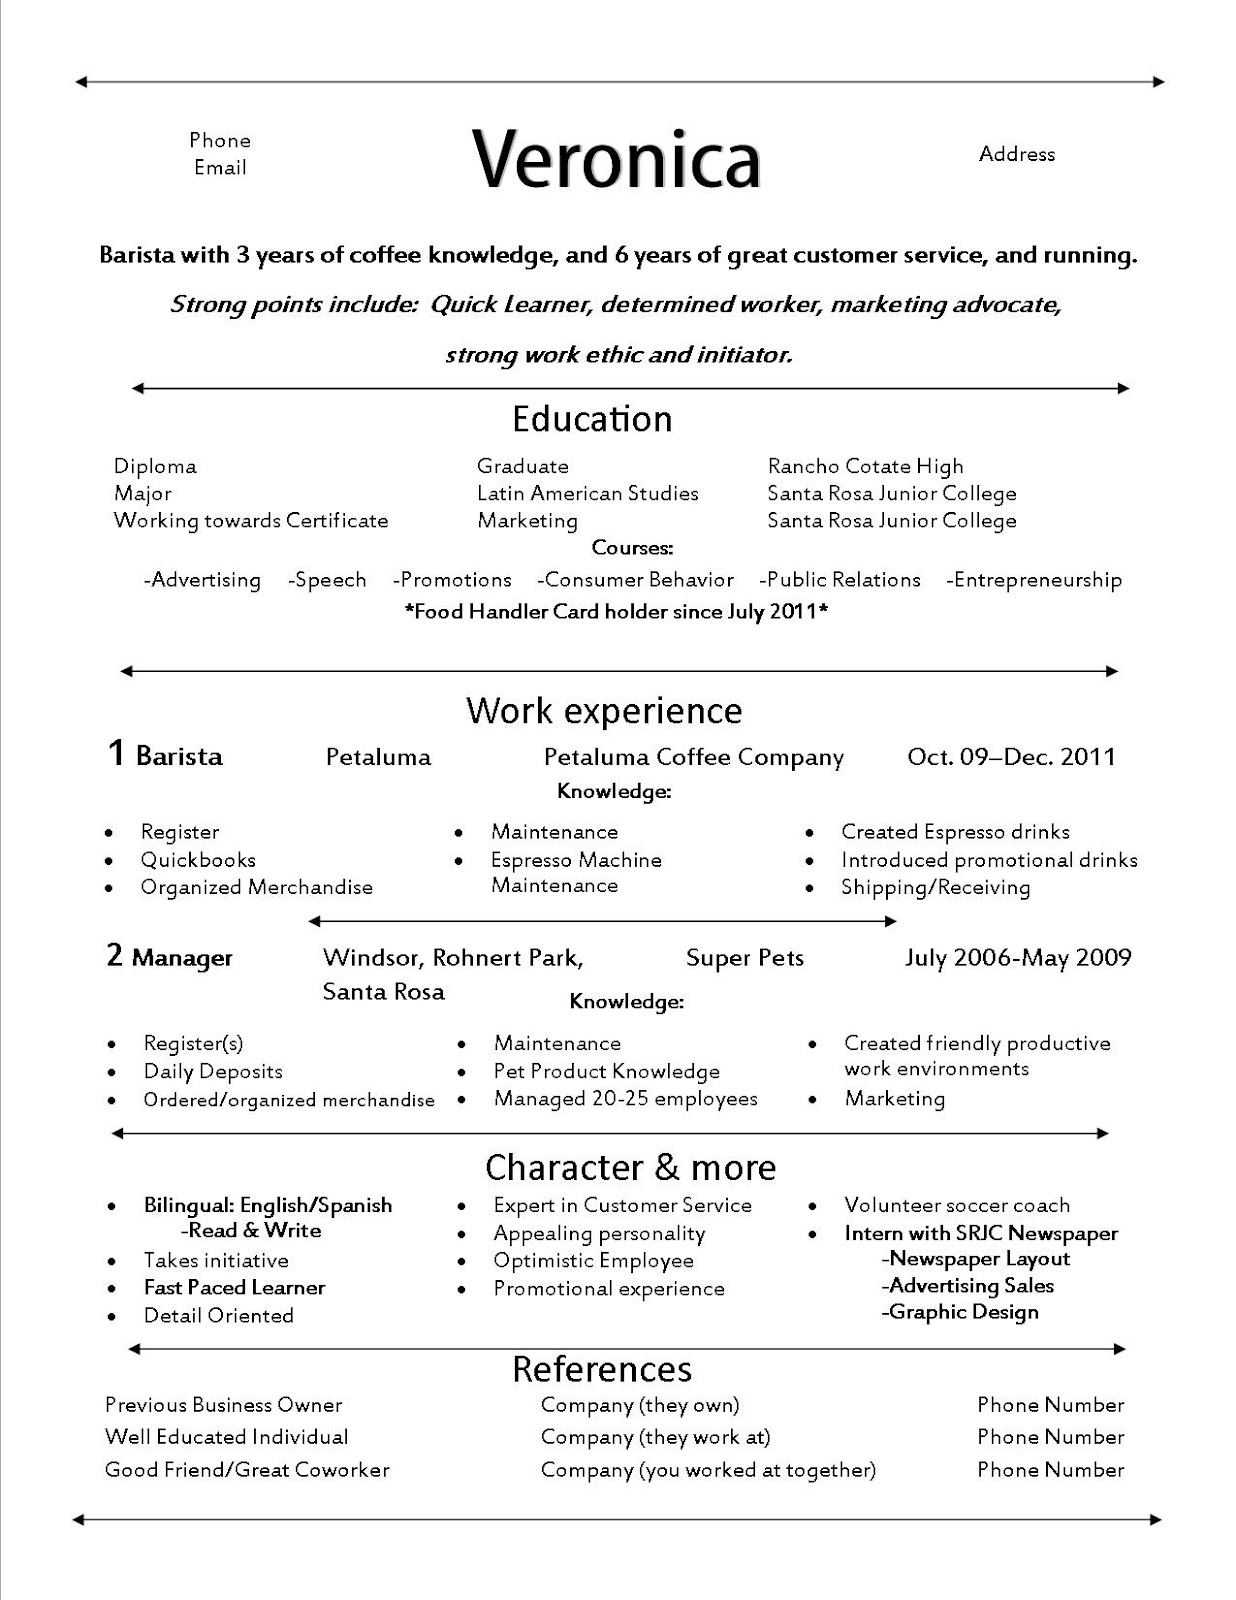 Entry level bank examiner cover letter microsoft chef resume best images about resume ideas on pinterest microsoft action make your resume stand out by michelle madrichimfo Images